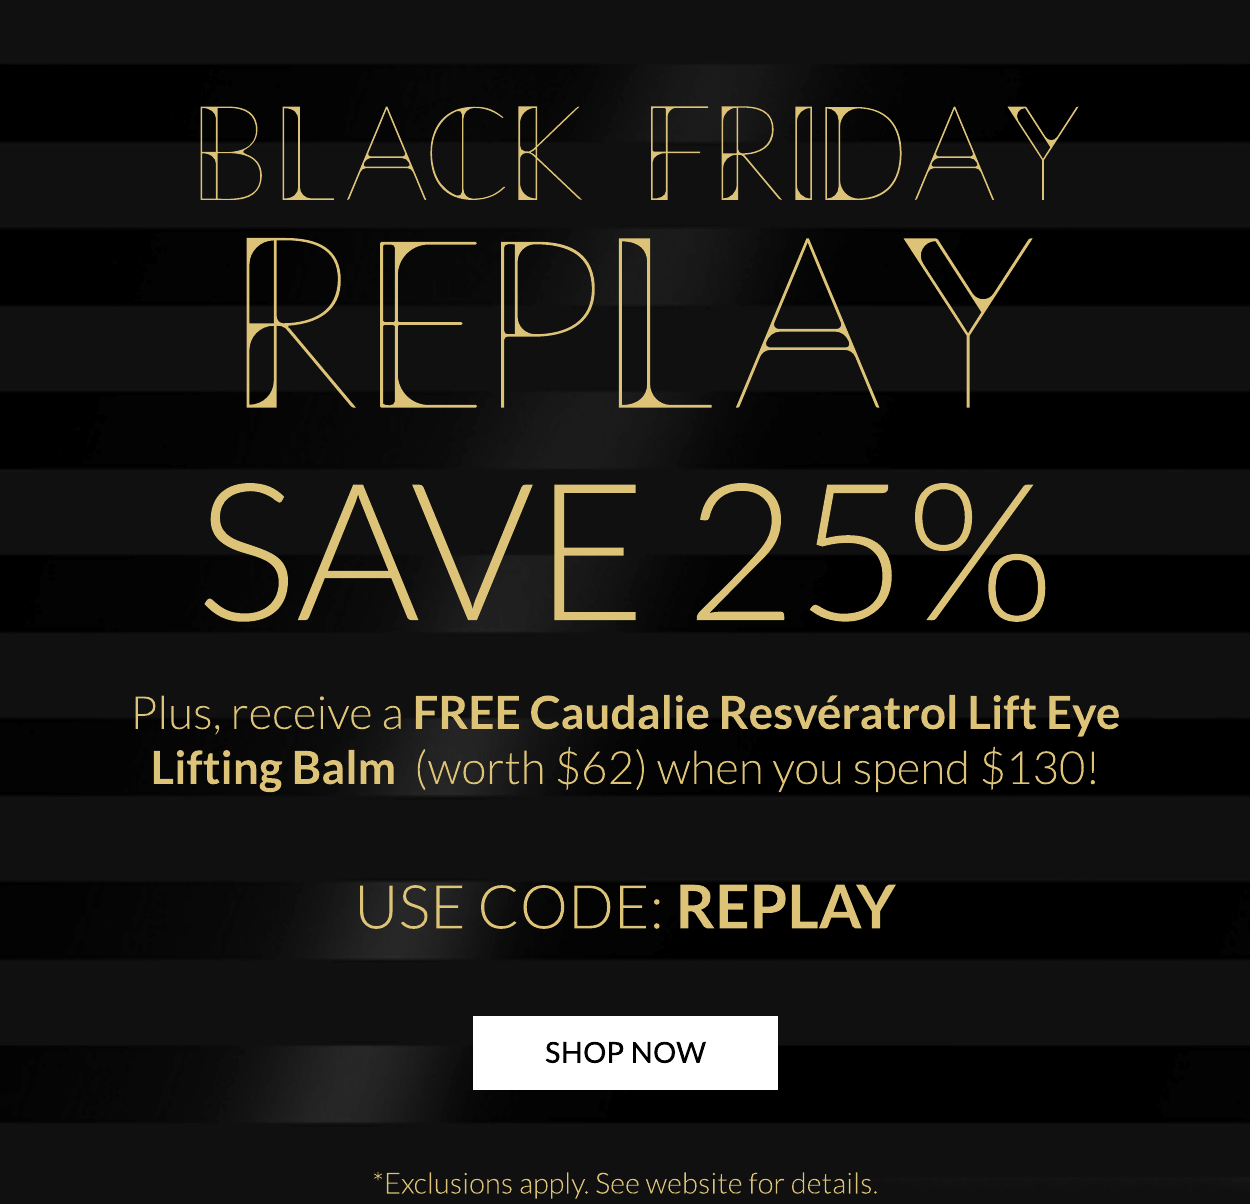 BLACK FRIDAY REPLAY 25% OFF